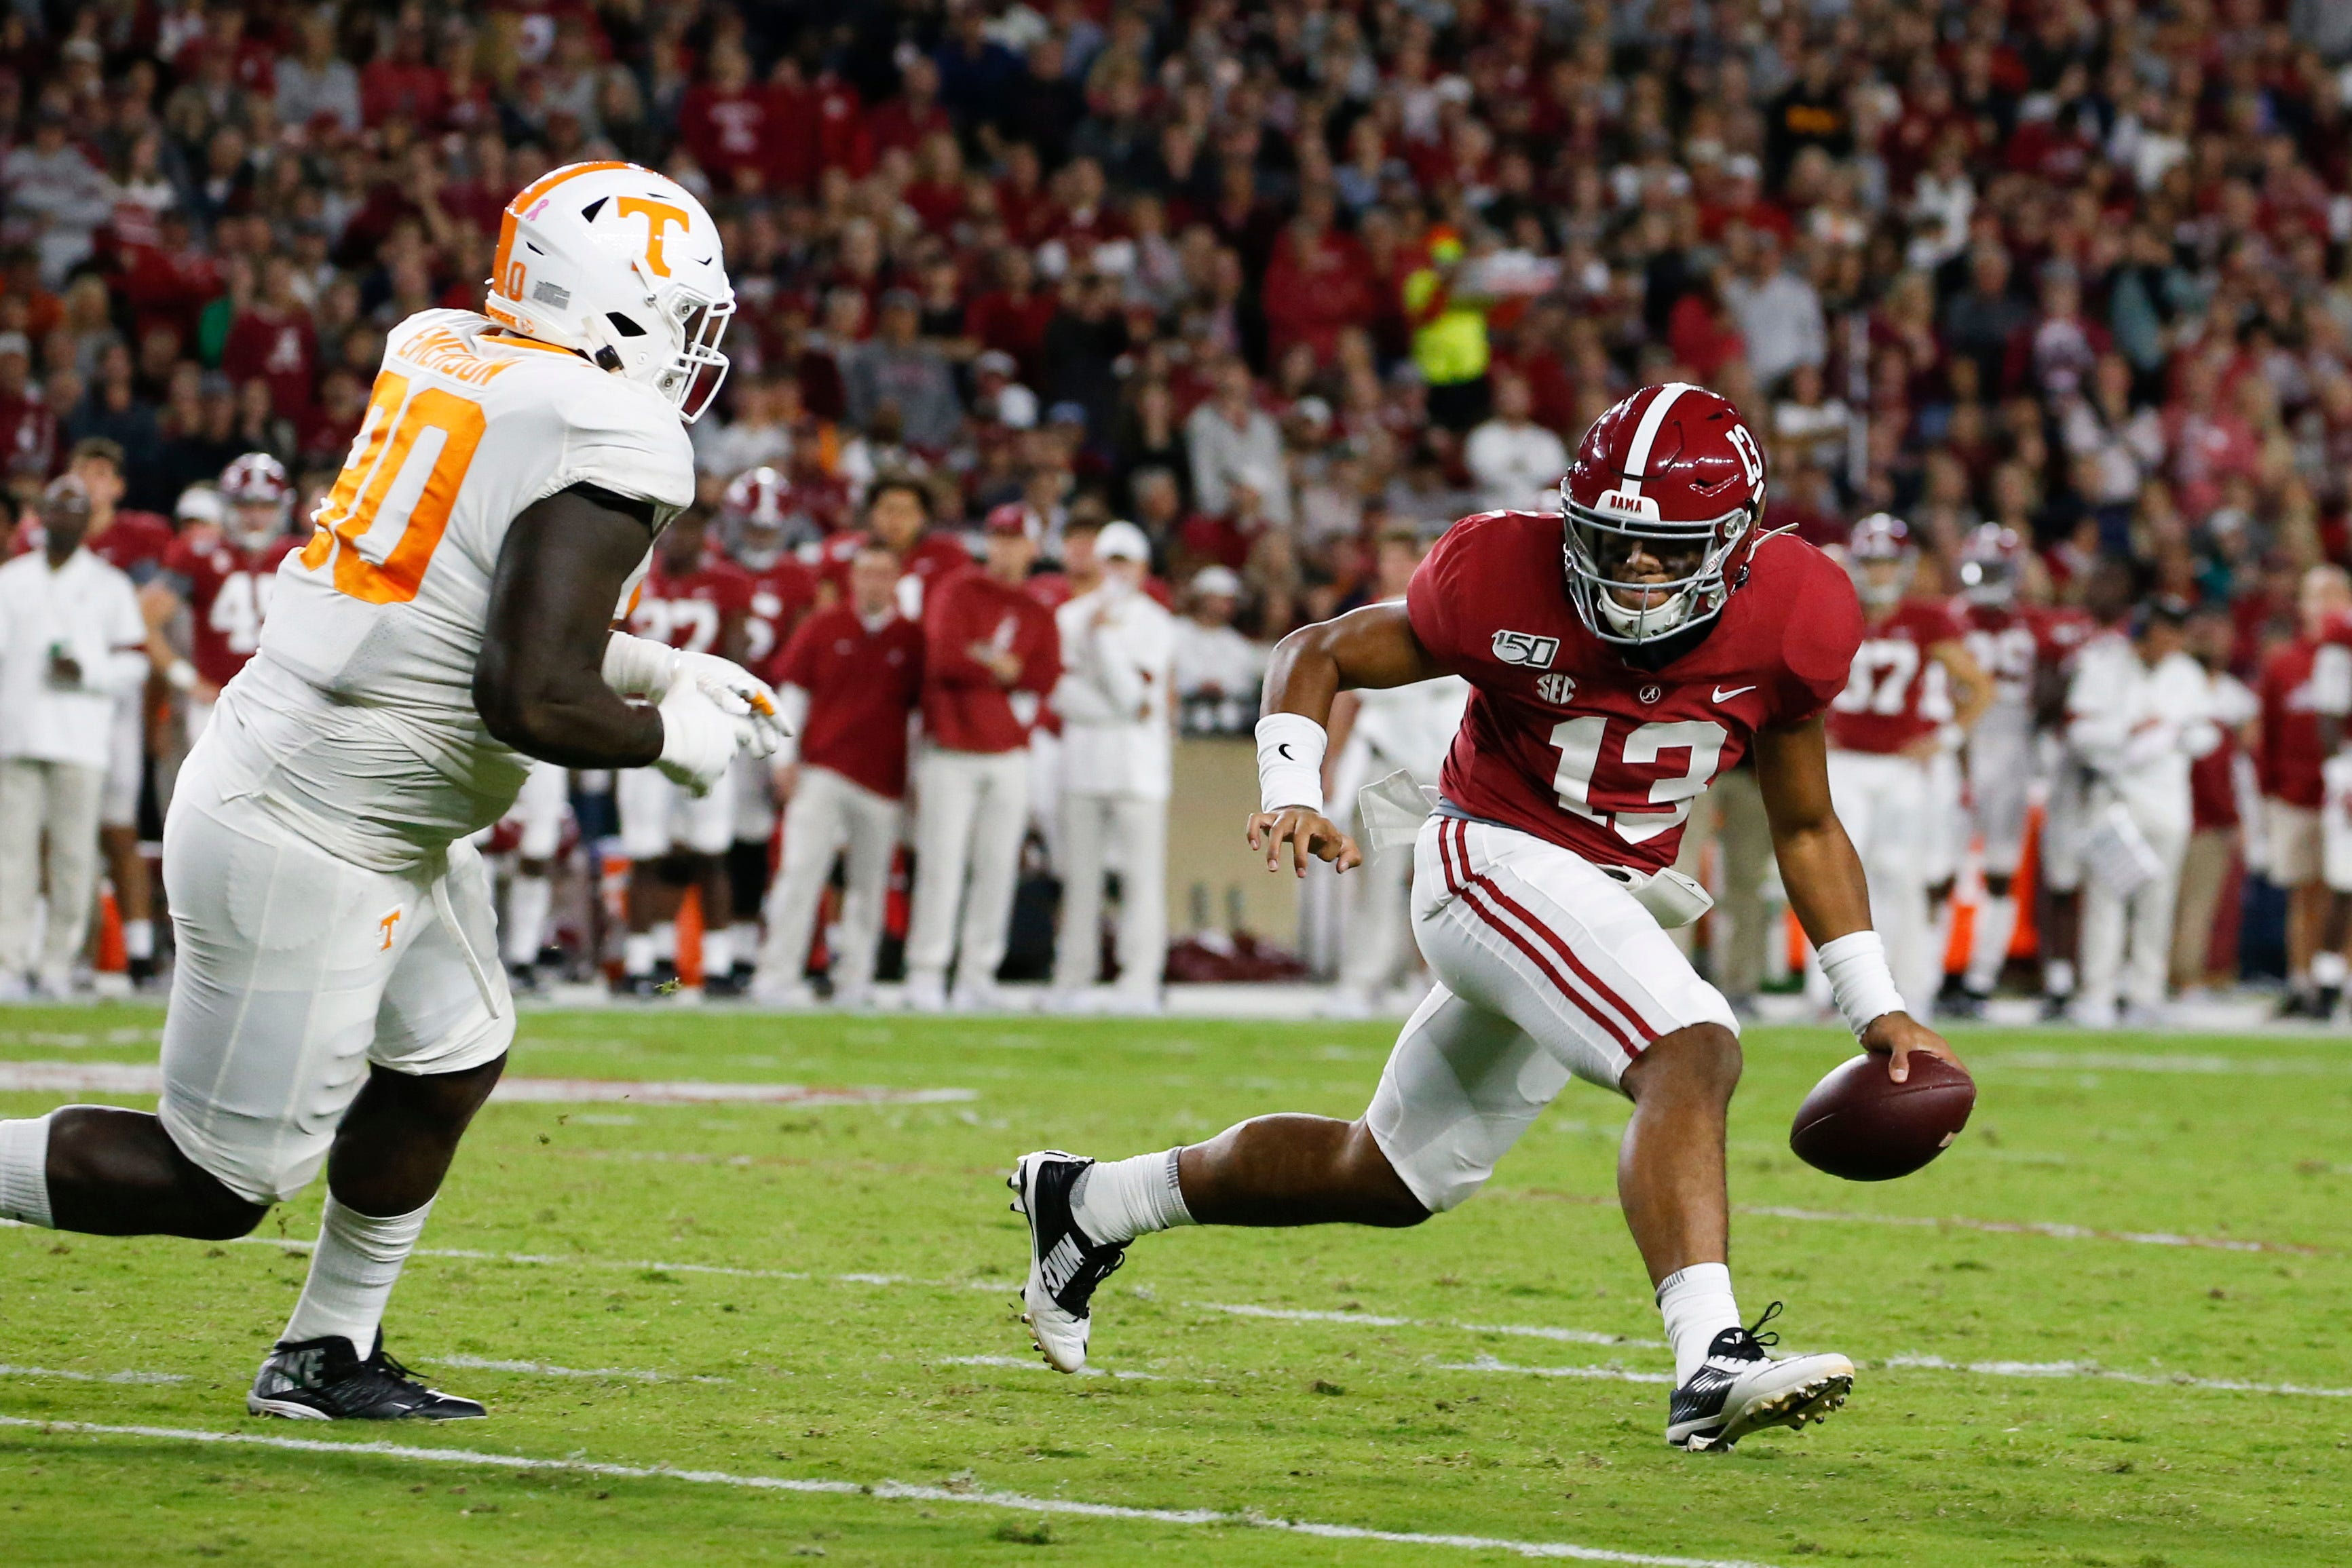 Alabama QB Tua Tagovailoa will miss at least one game with ankle injury